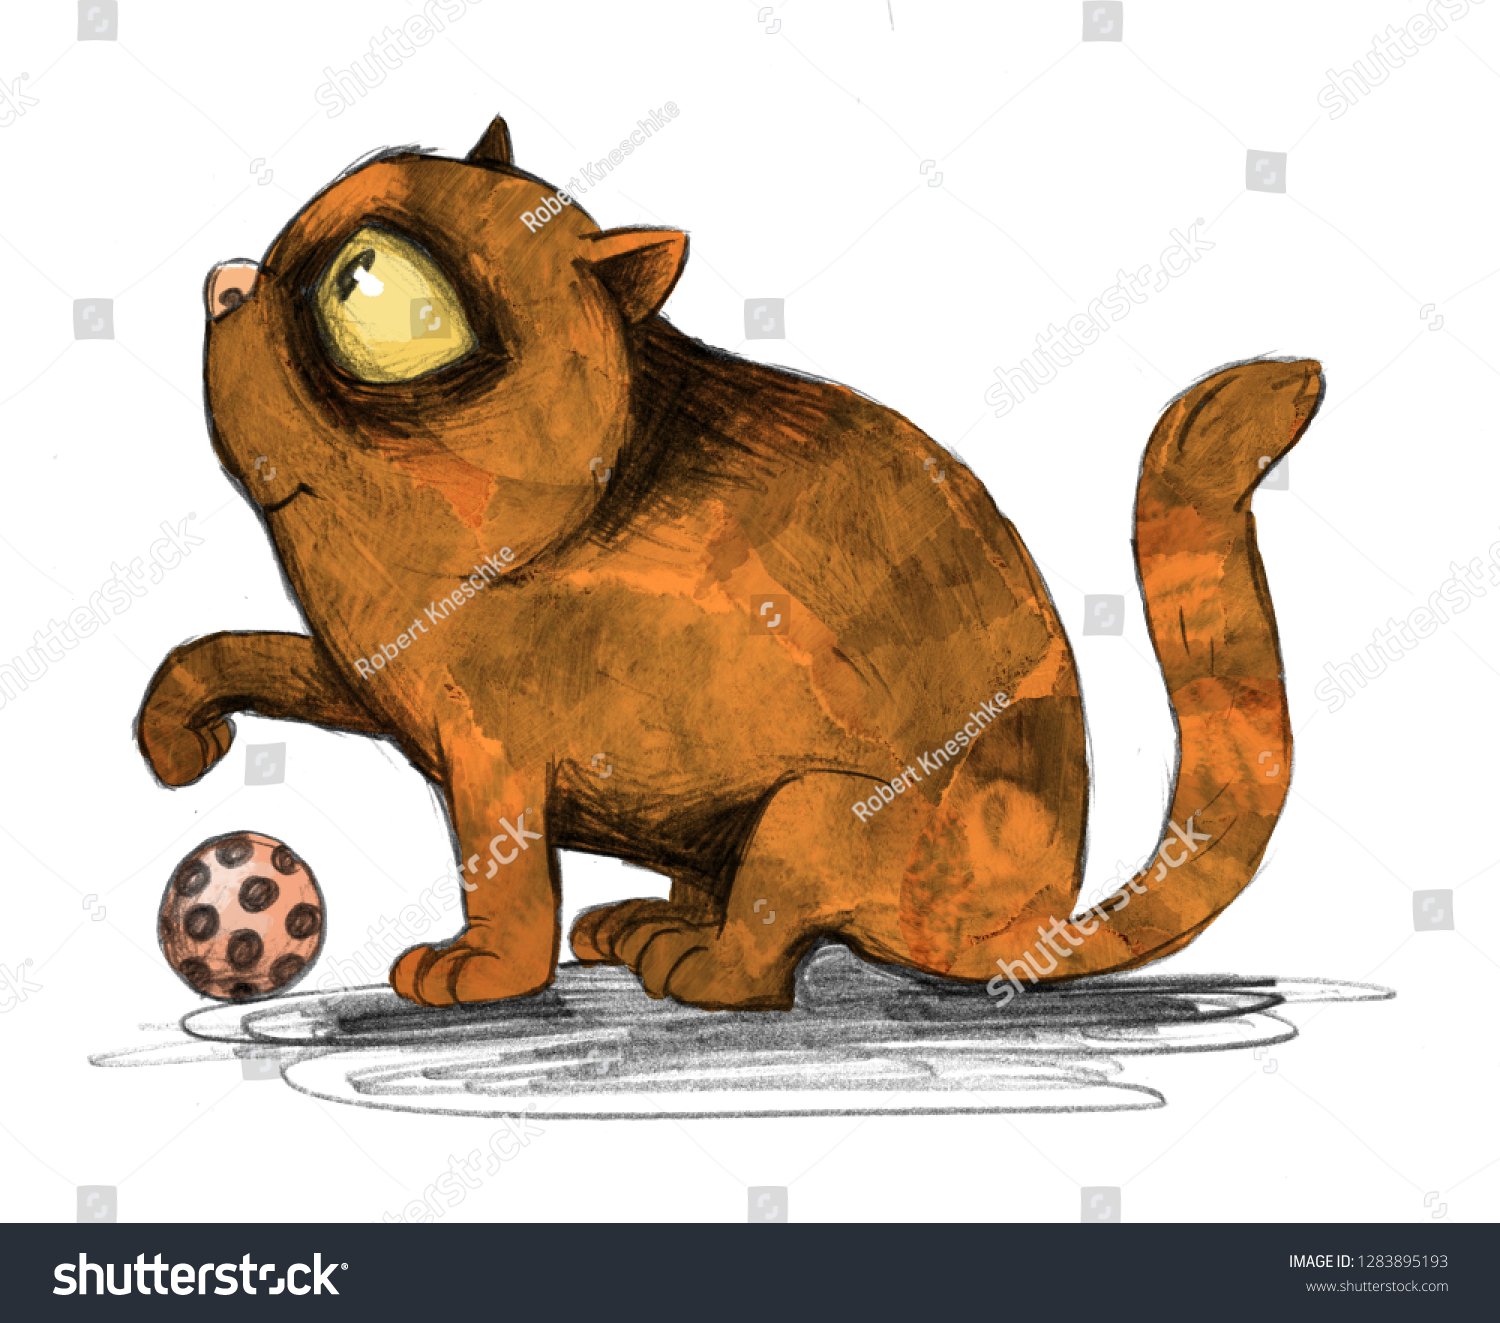 Cute Cartoon Cat Kitten Profile Redbrown Stock Illustration 1283895193